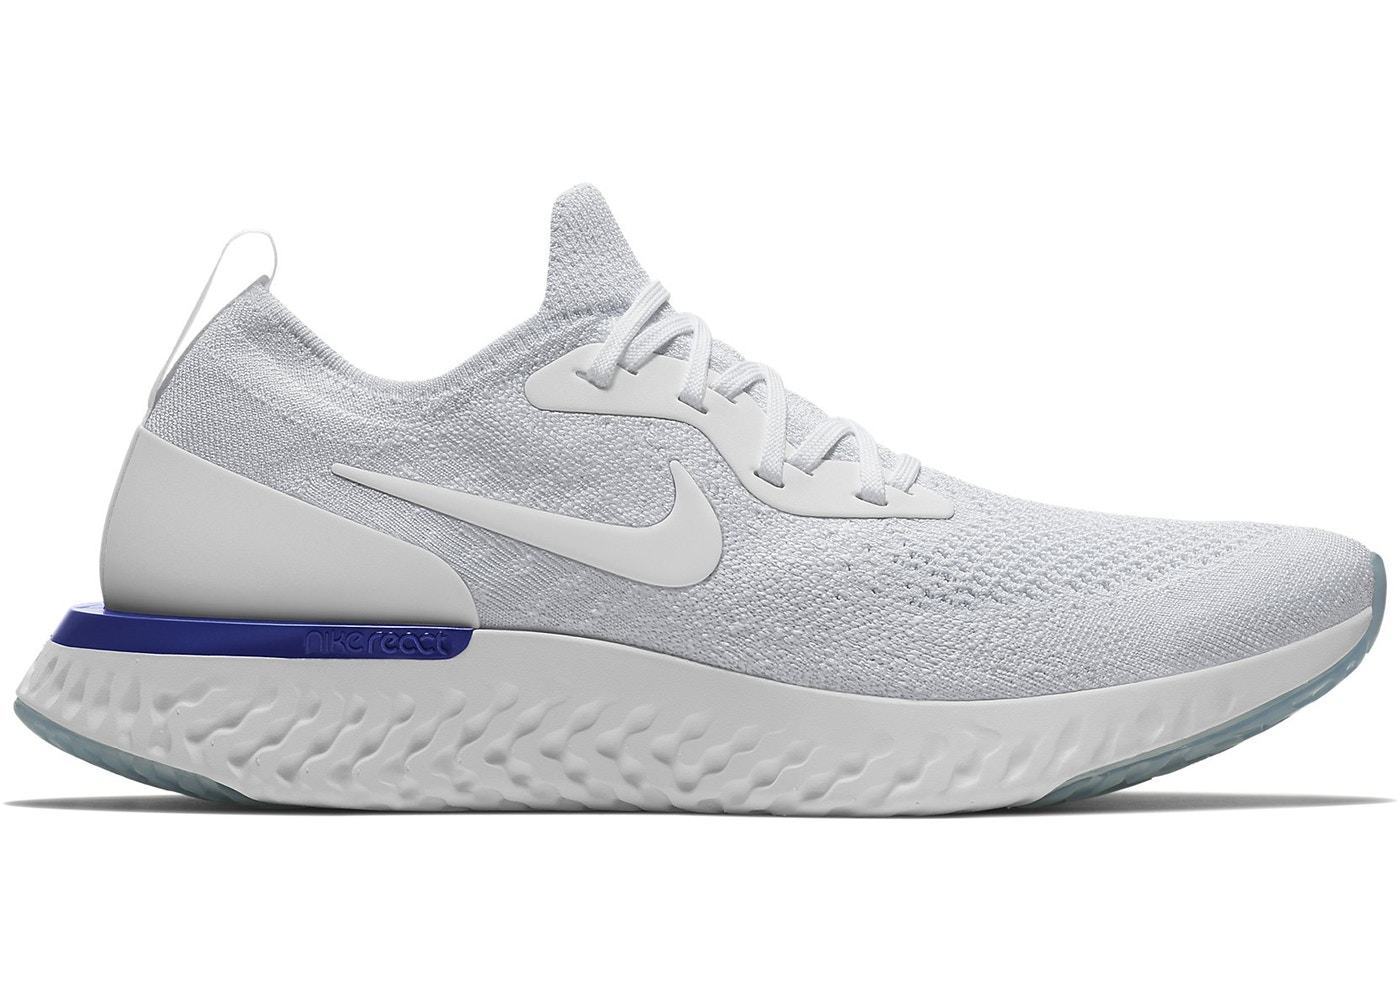 Nike+ EXCLUSIVE SHOP Epic React Running Shoes White AQ0067-100 Men's SIZE 9.5